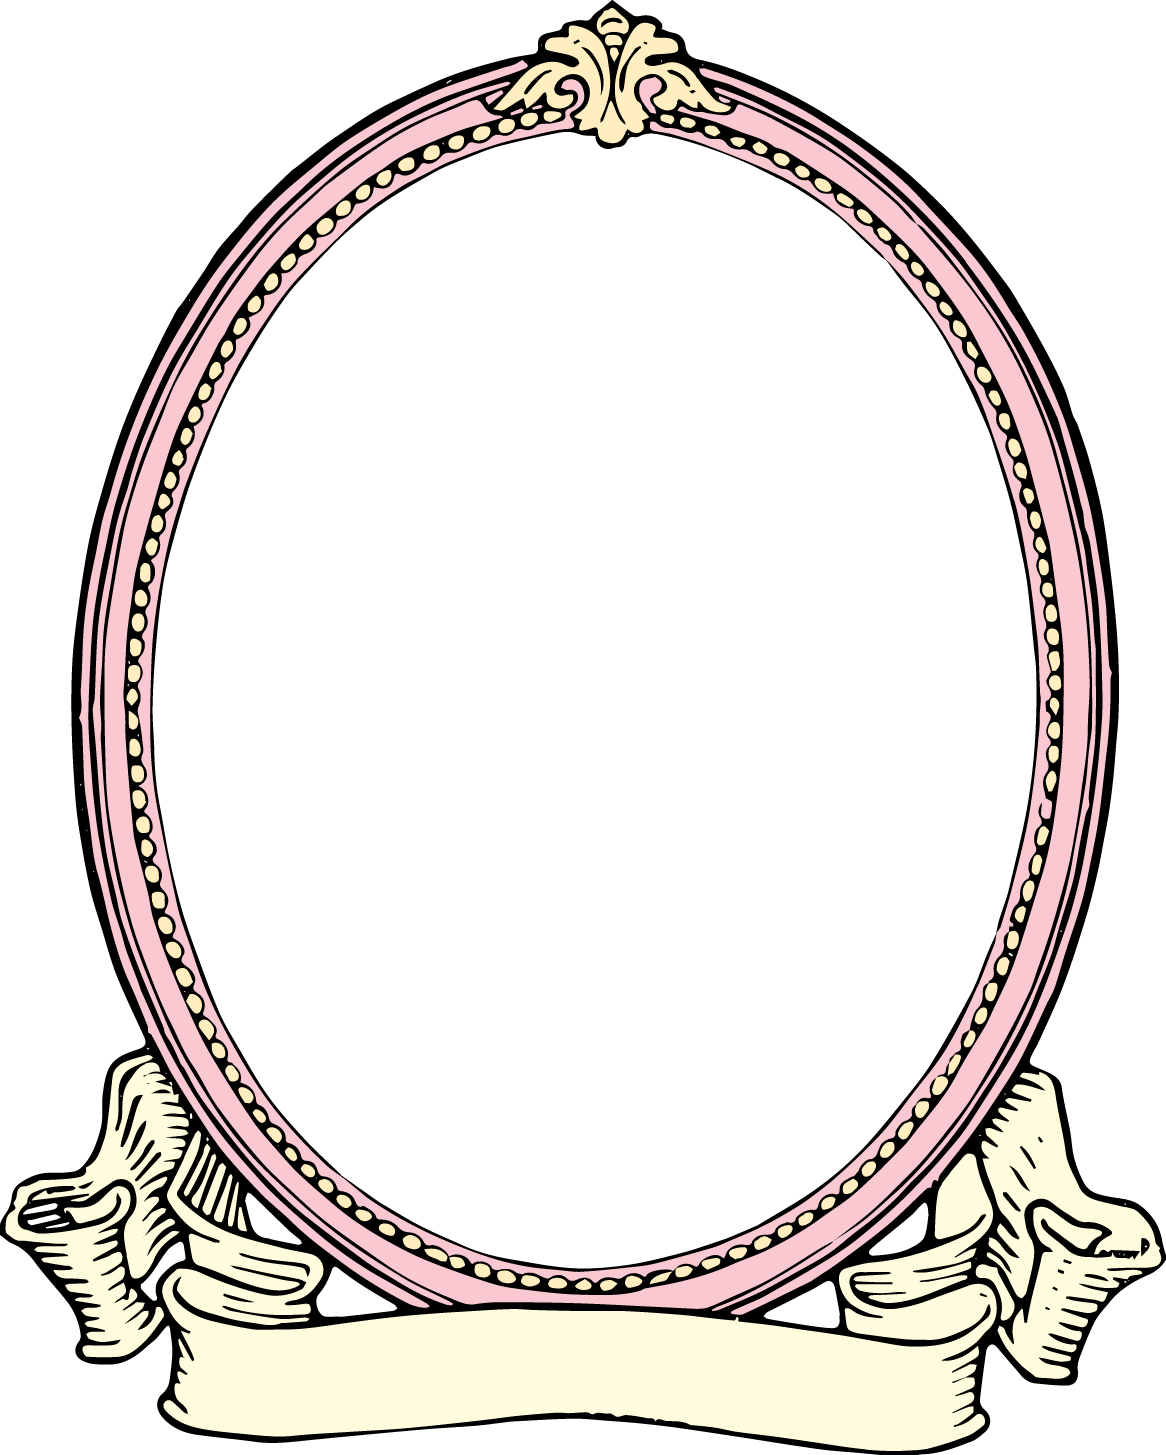 Frames clipart simple, Frames simple Transparent FREE for ...